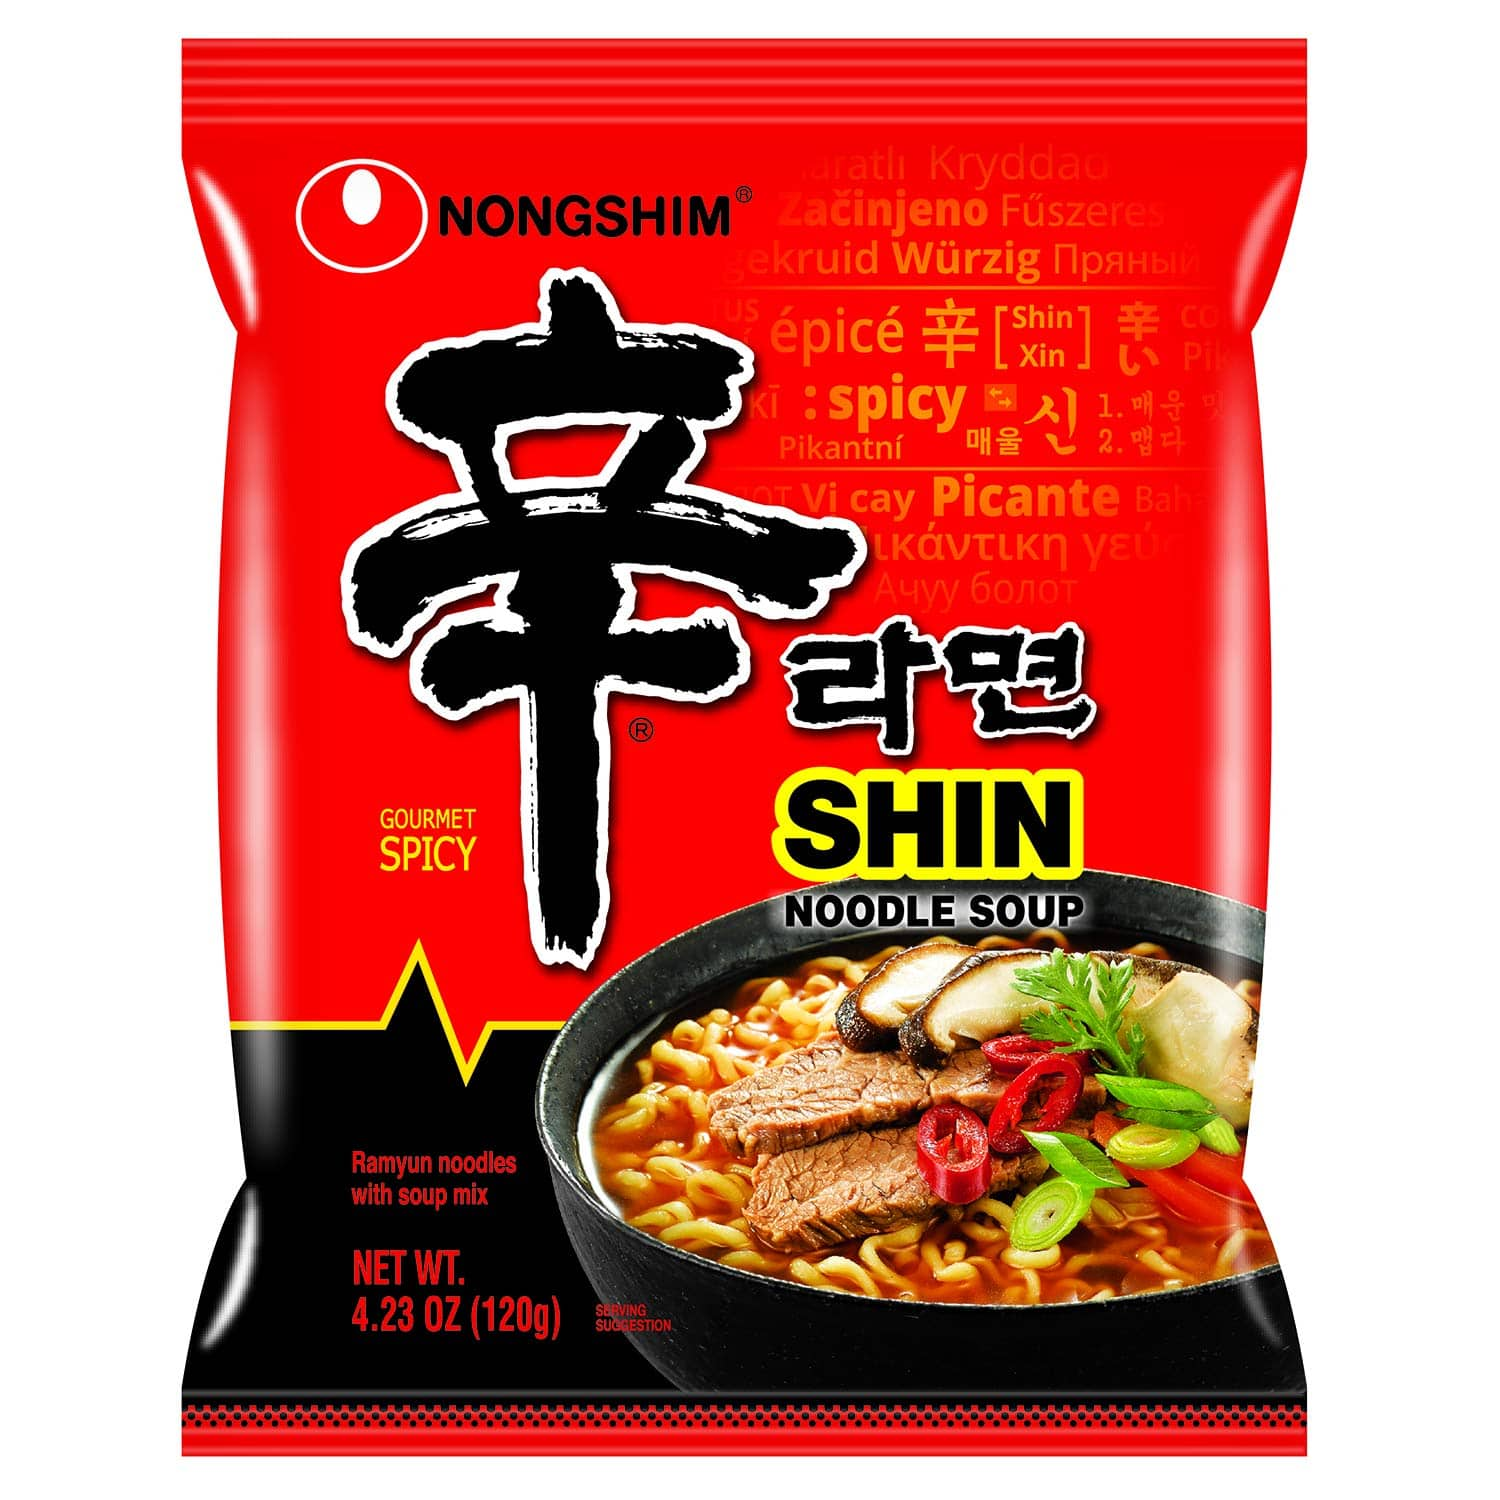 Nongshim Shin Ramyun Noodle Soup, Gourmet Spicy, 4.2 Ounce (Pack of 20) $16.66